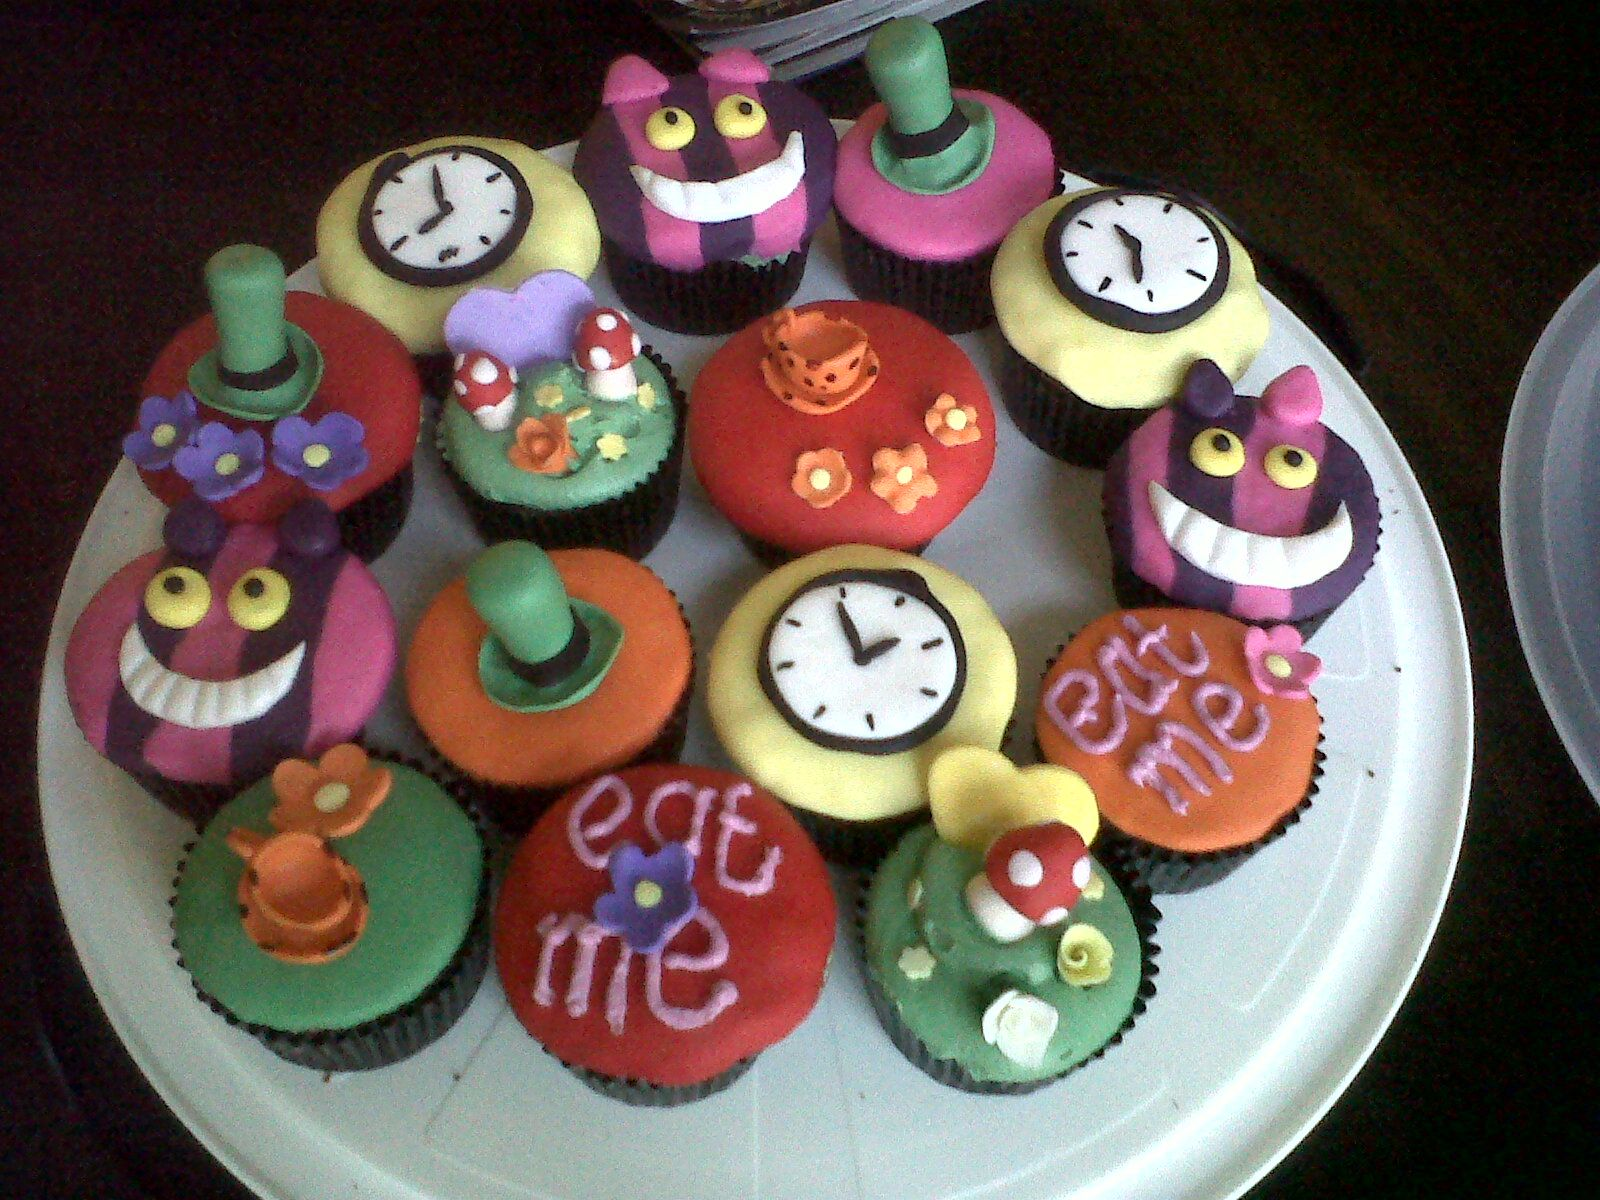 mad hatter cupcakes - photo #5